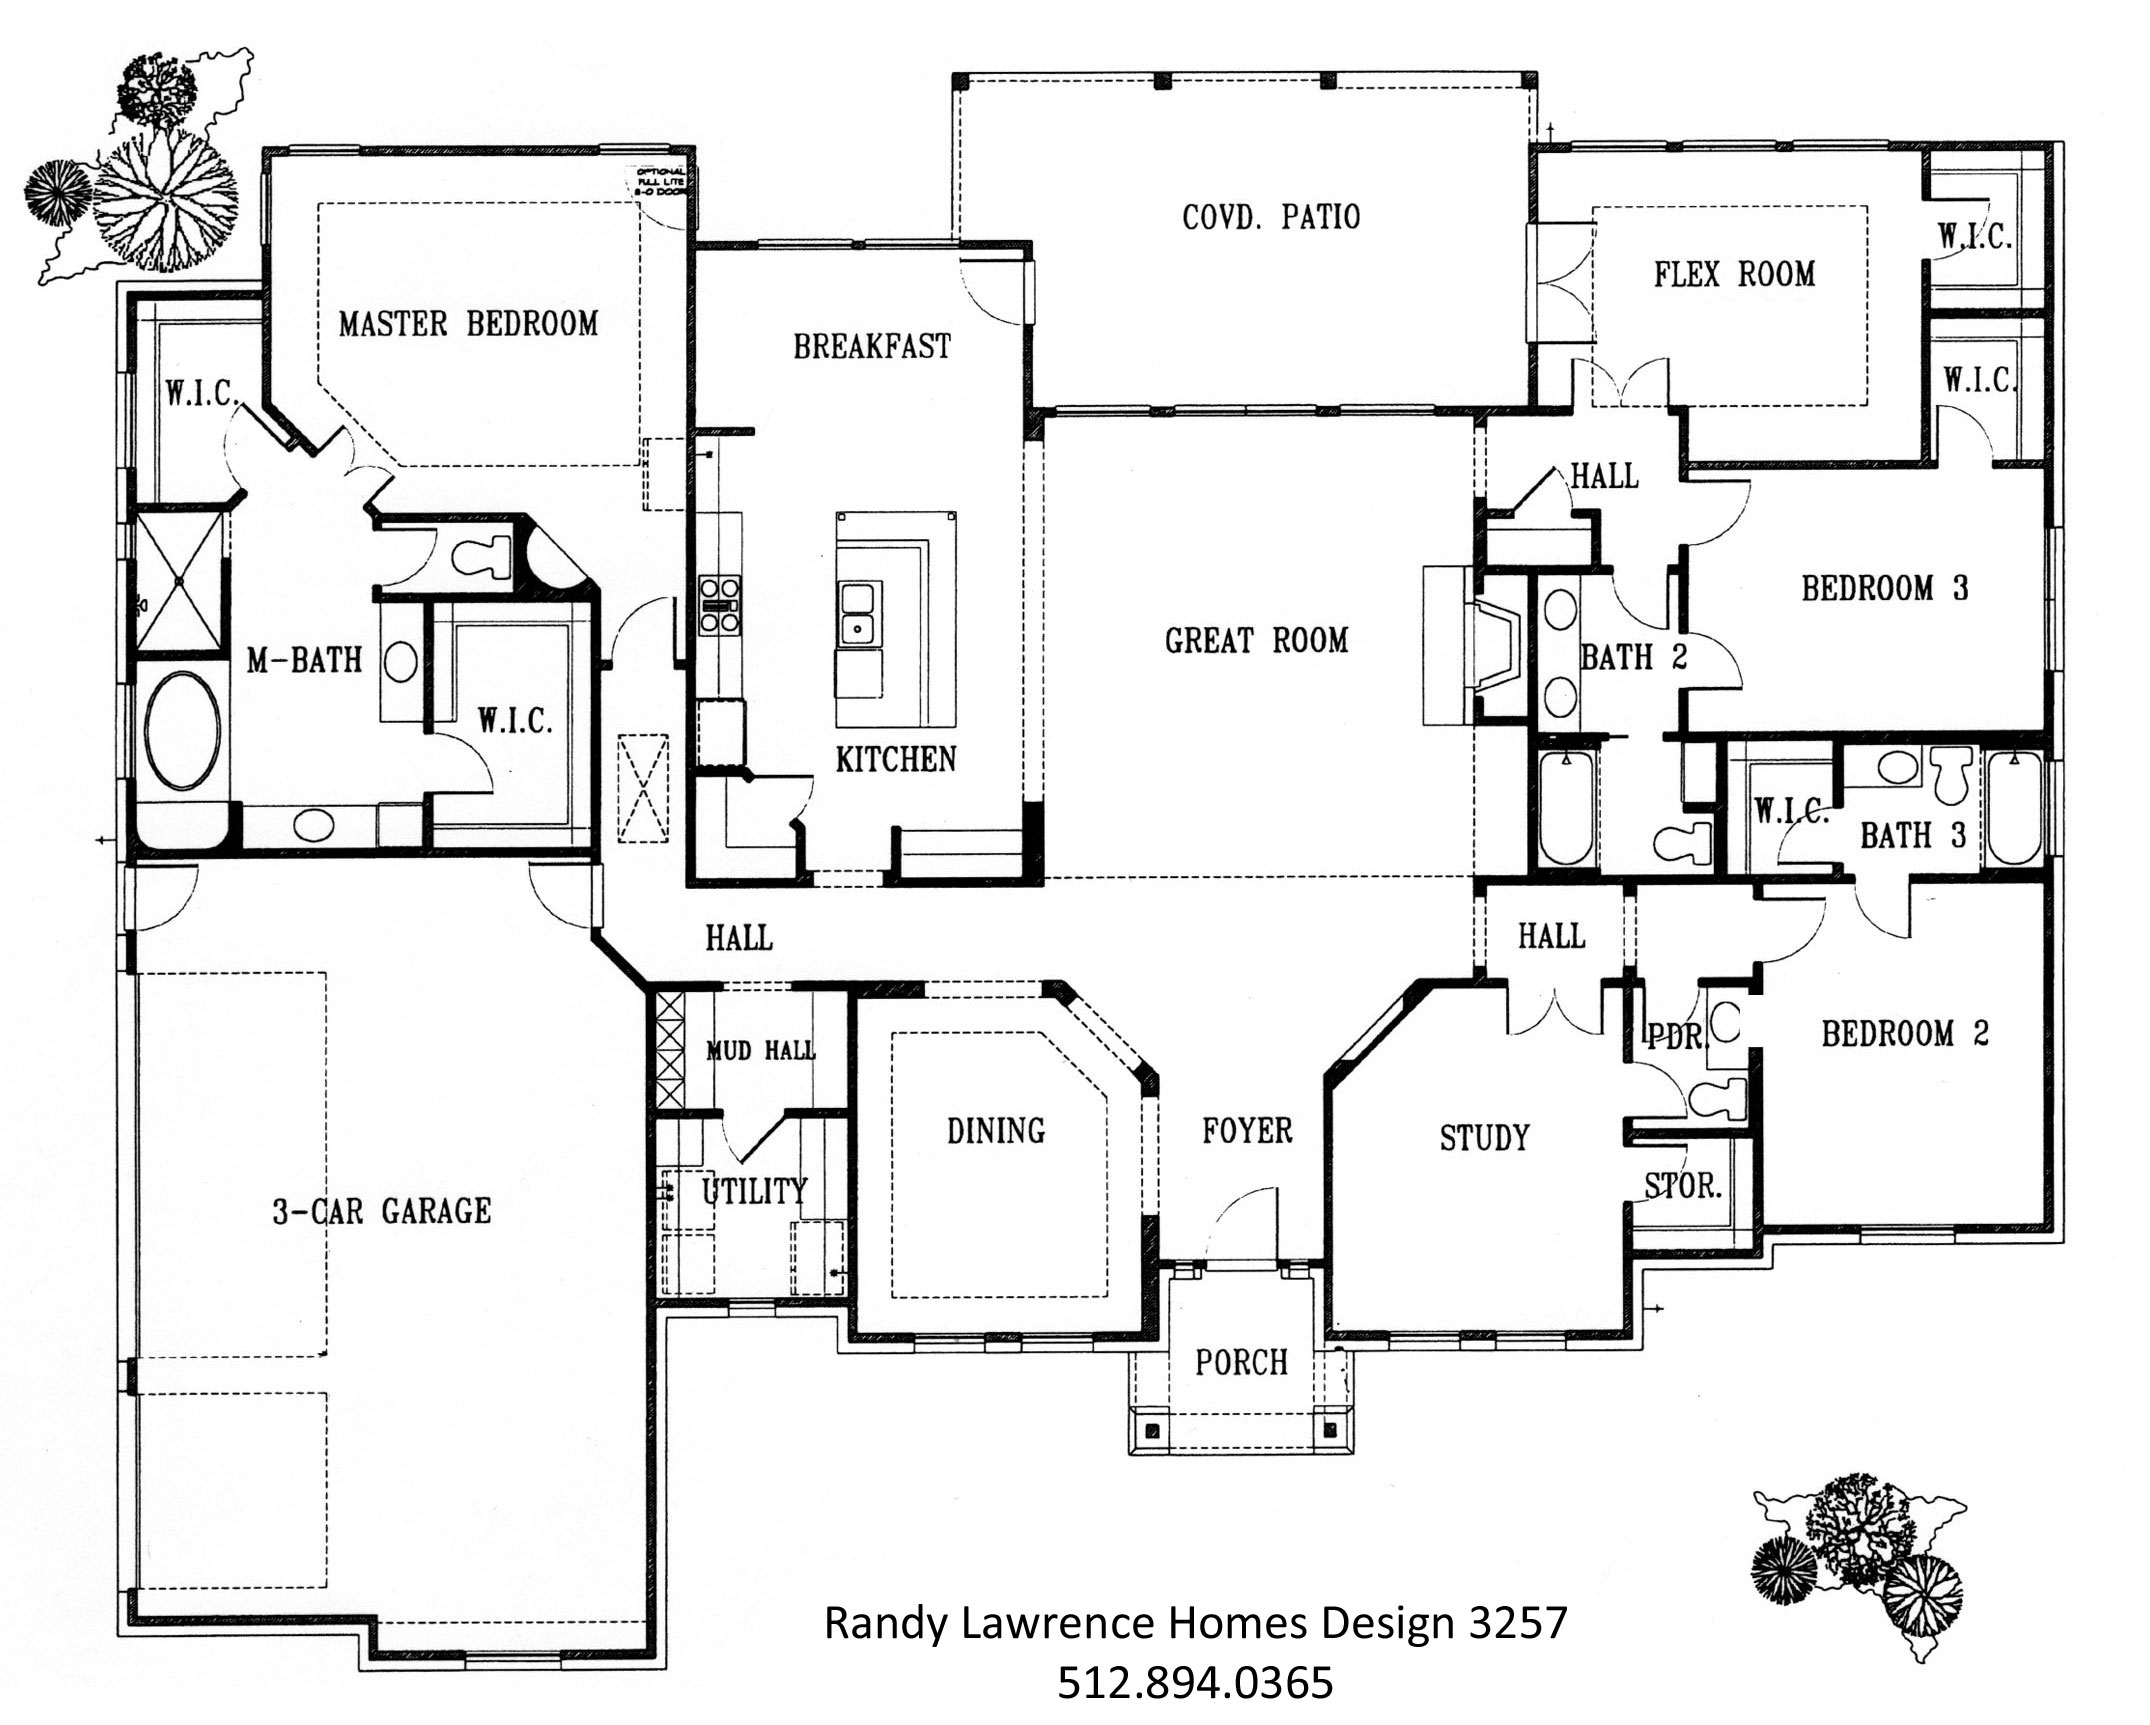 Home Floor Plans two bedroom one bath shipping container home floor plan Randy Lawrence Homes Floor Plan 3257